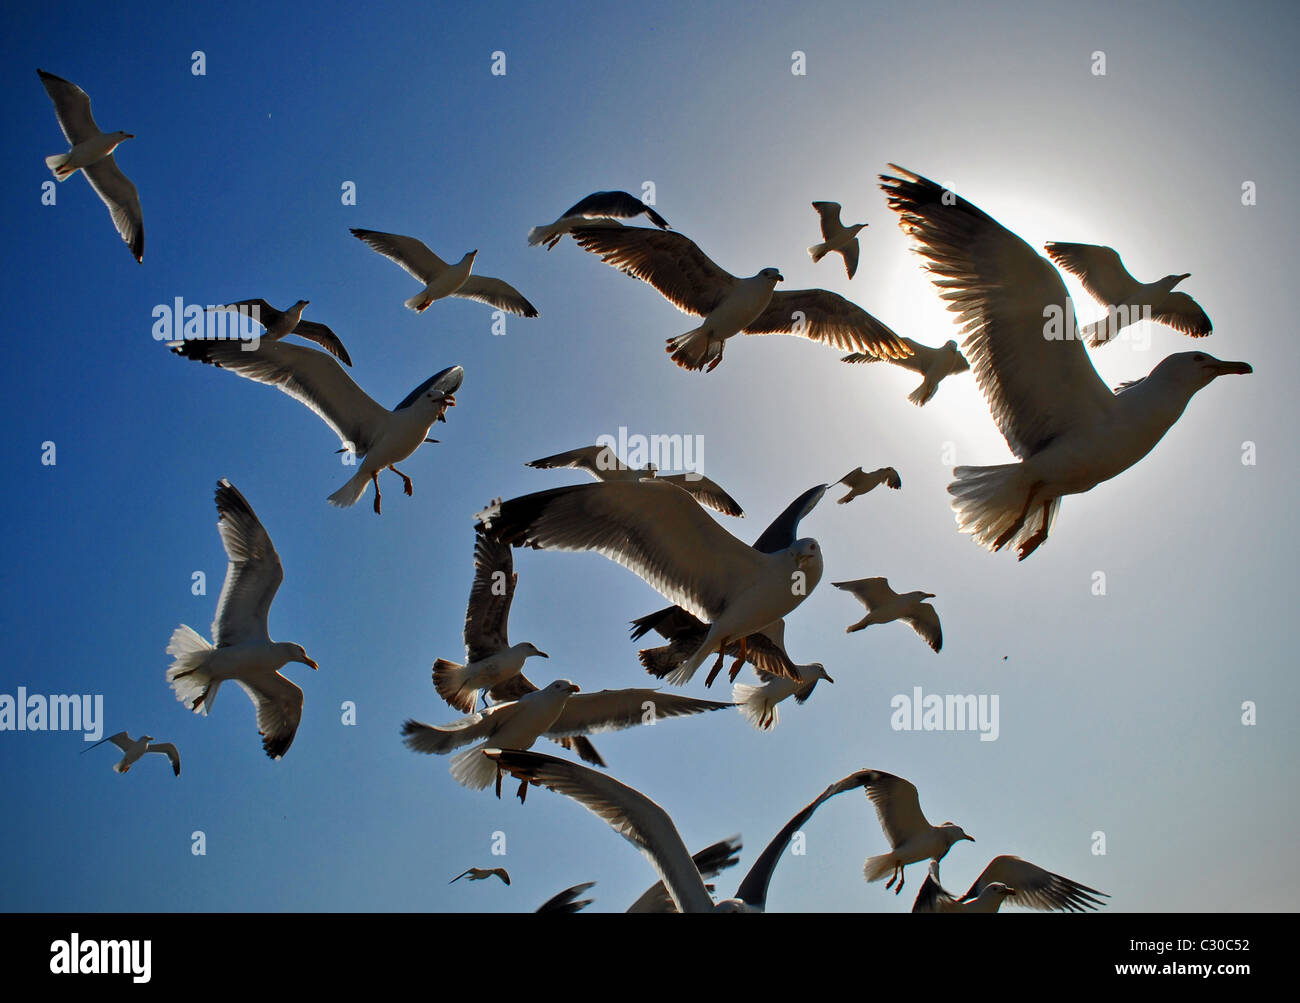 Flock of seagulls en vol Photo Stock